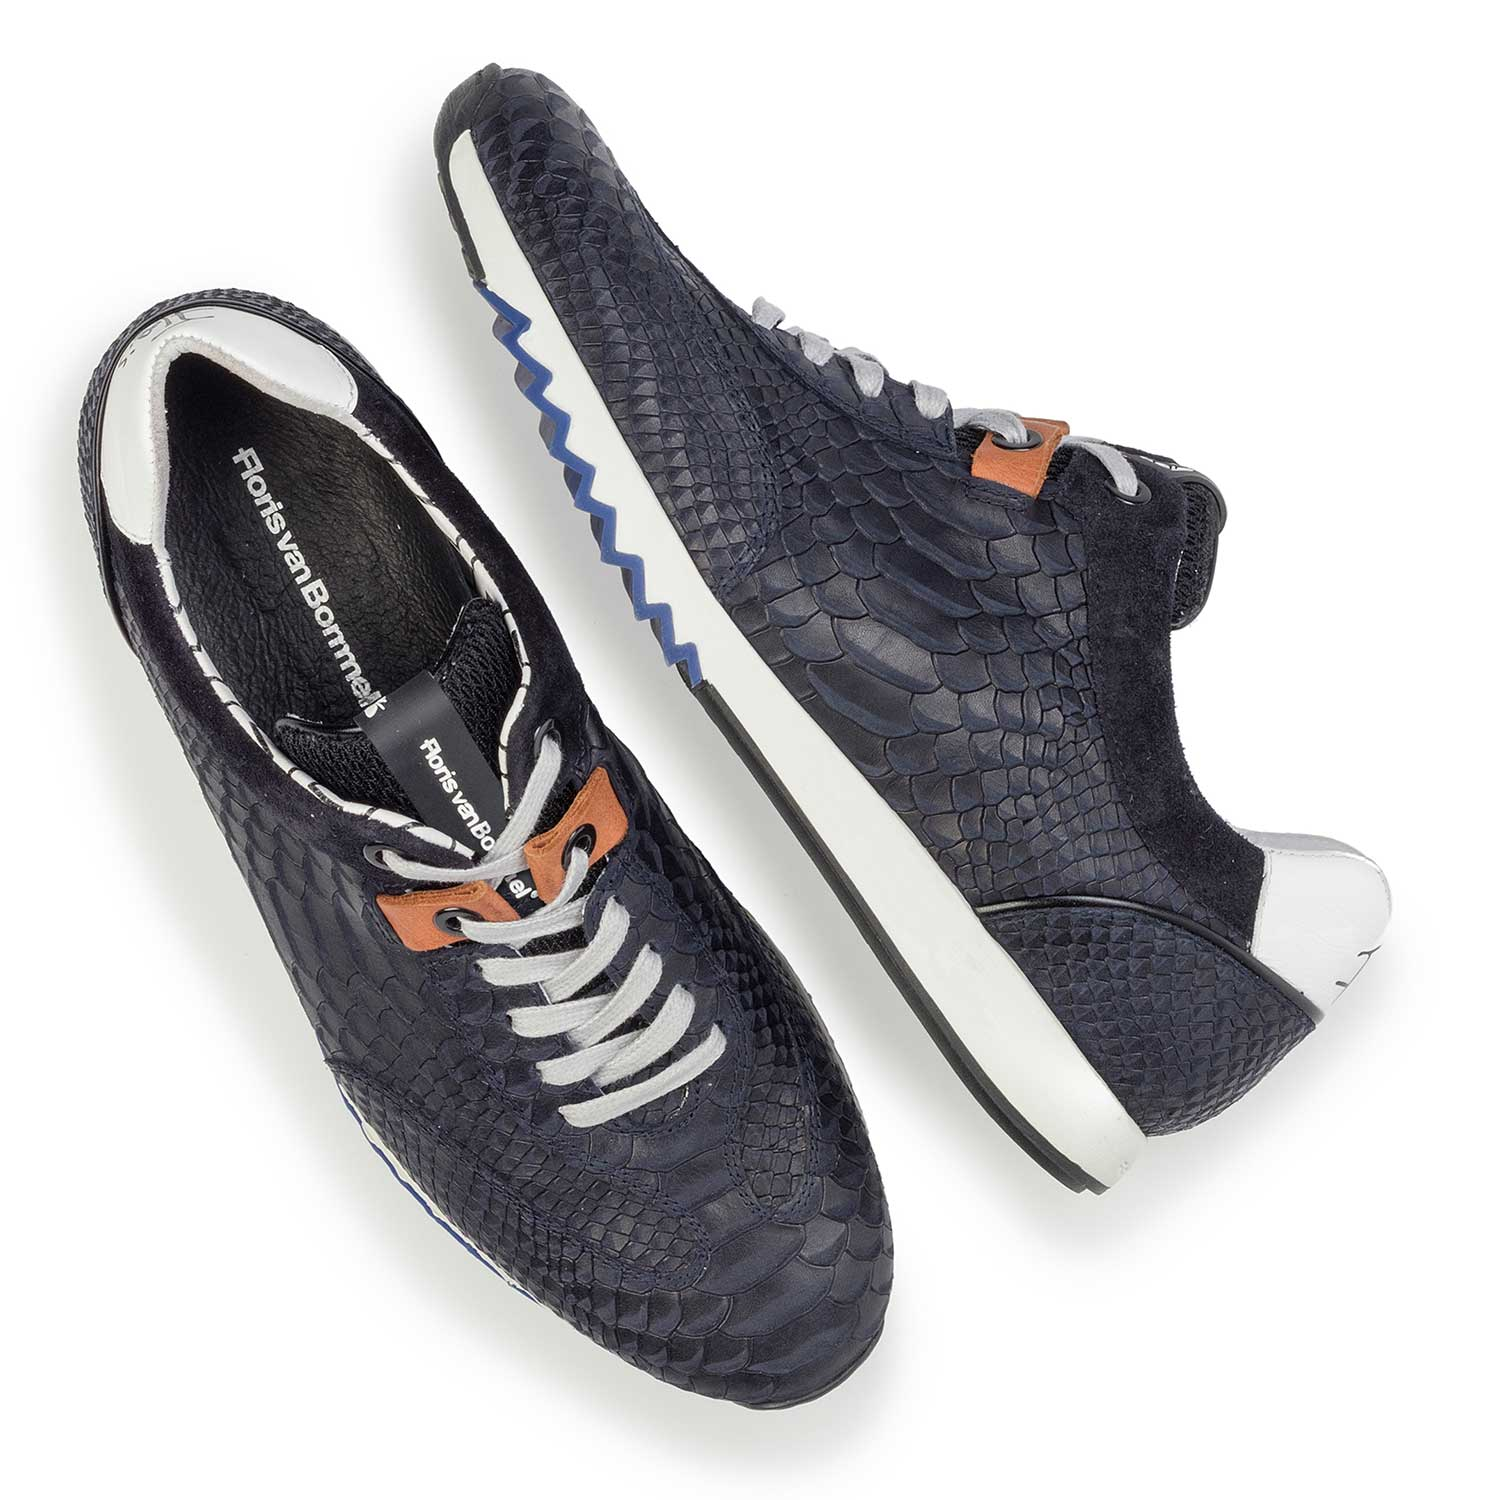 16219/04 - Dark blue leather sneaker finished with a snake print